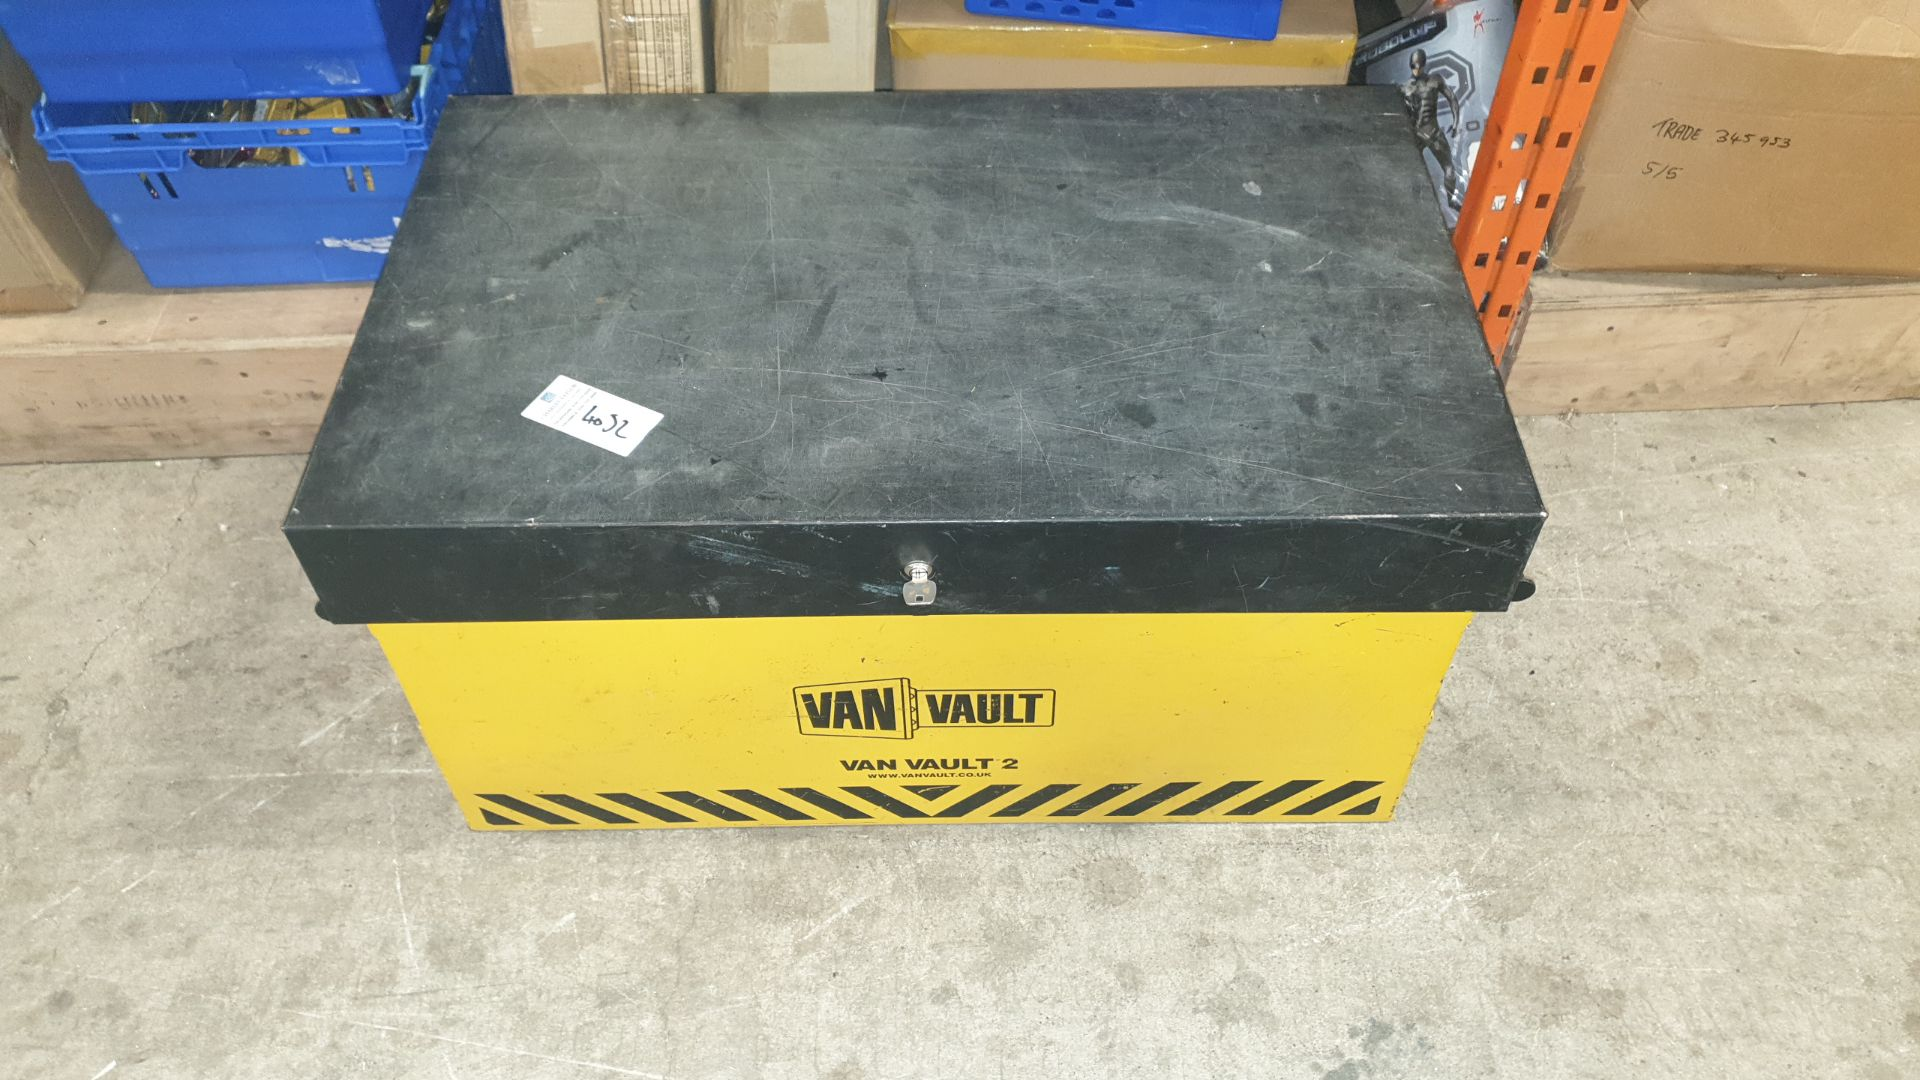 1 X LOCKABLE VAN VAULT KEY INCLUDED SIZE 92 X 56 X 51 CM